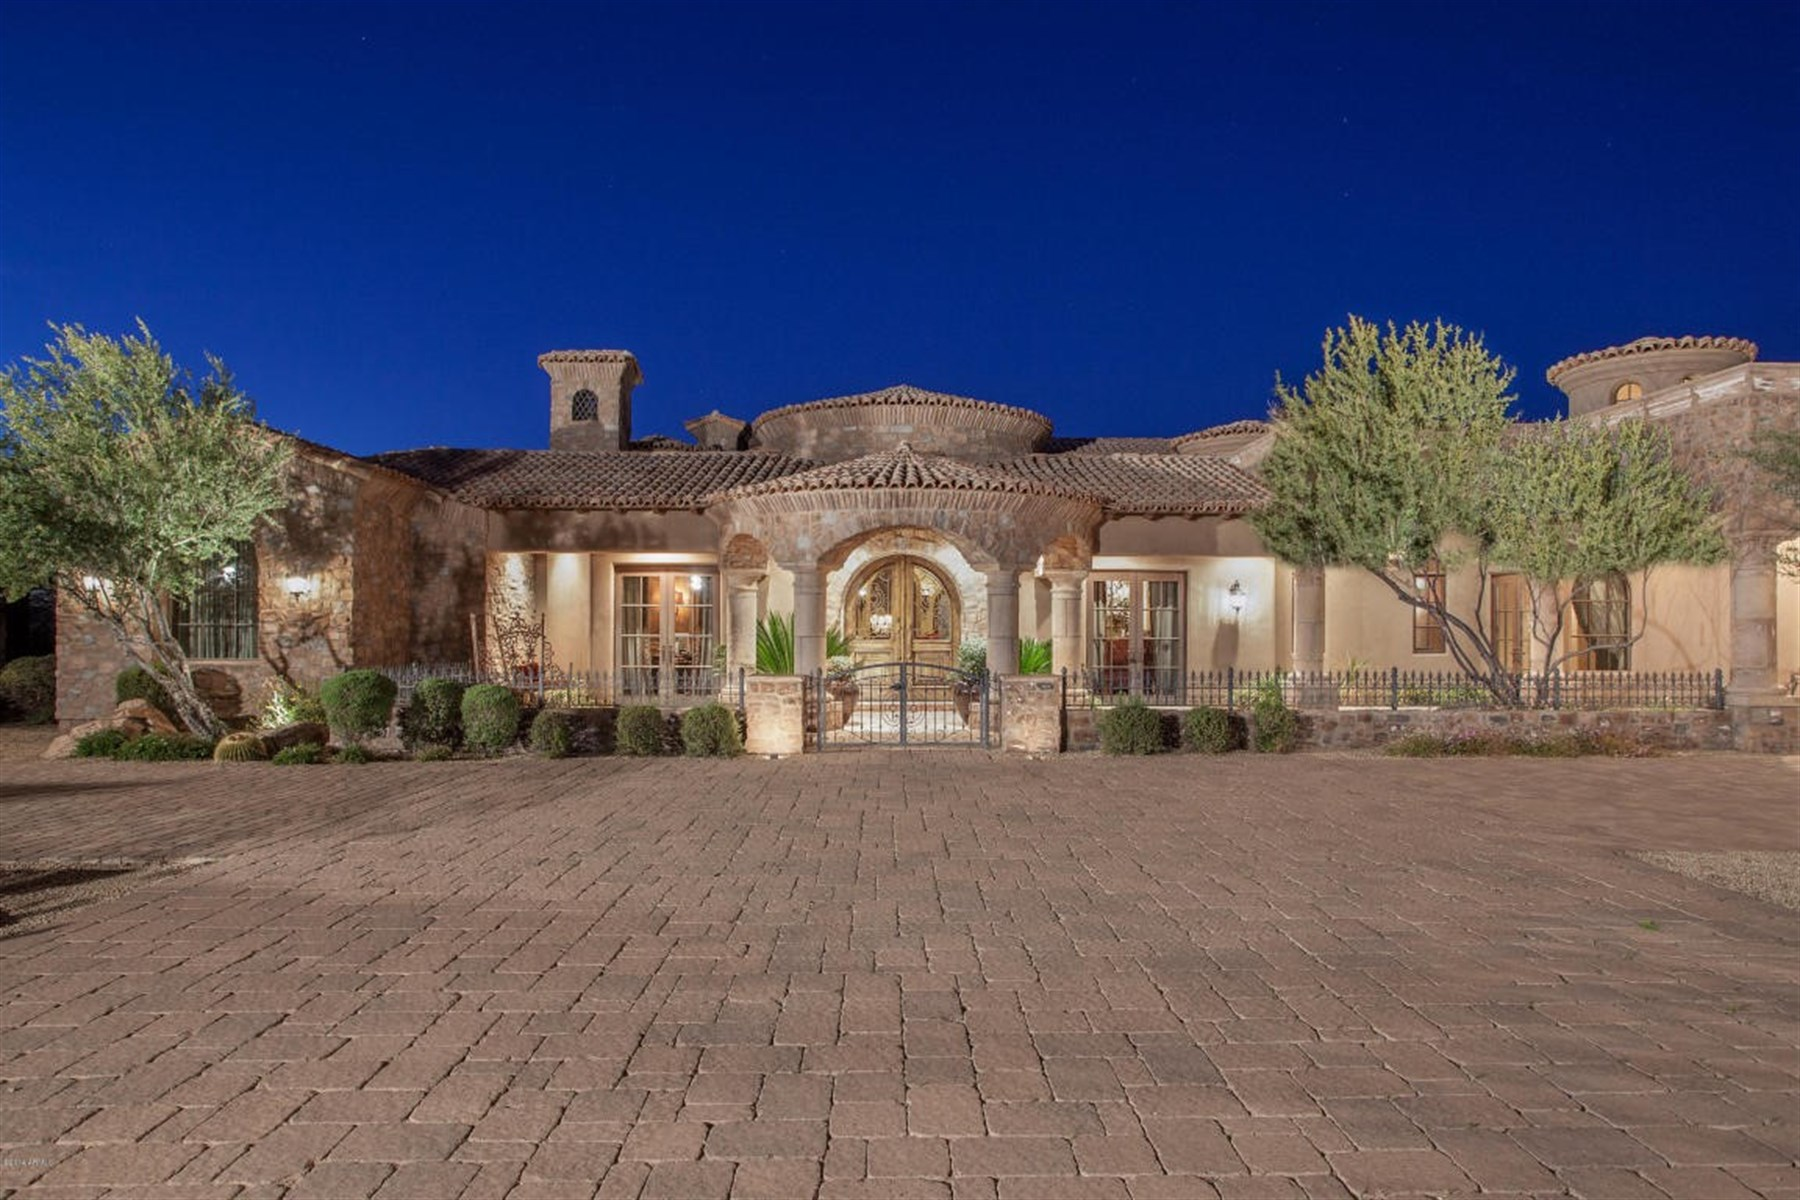 Single Family Home for Sale at Incredible sprawling estate situated on 8.75 acres of beautiful Sonoran Desert 8143 E Stagecoach Pass Scottsdale, Arizona, 85266 United States